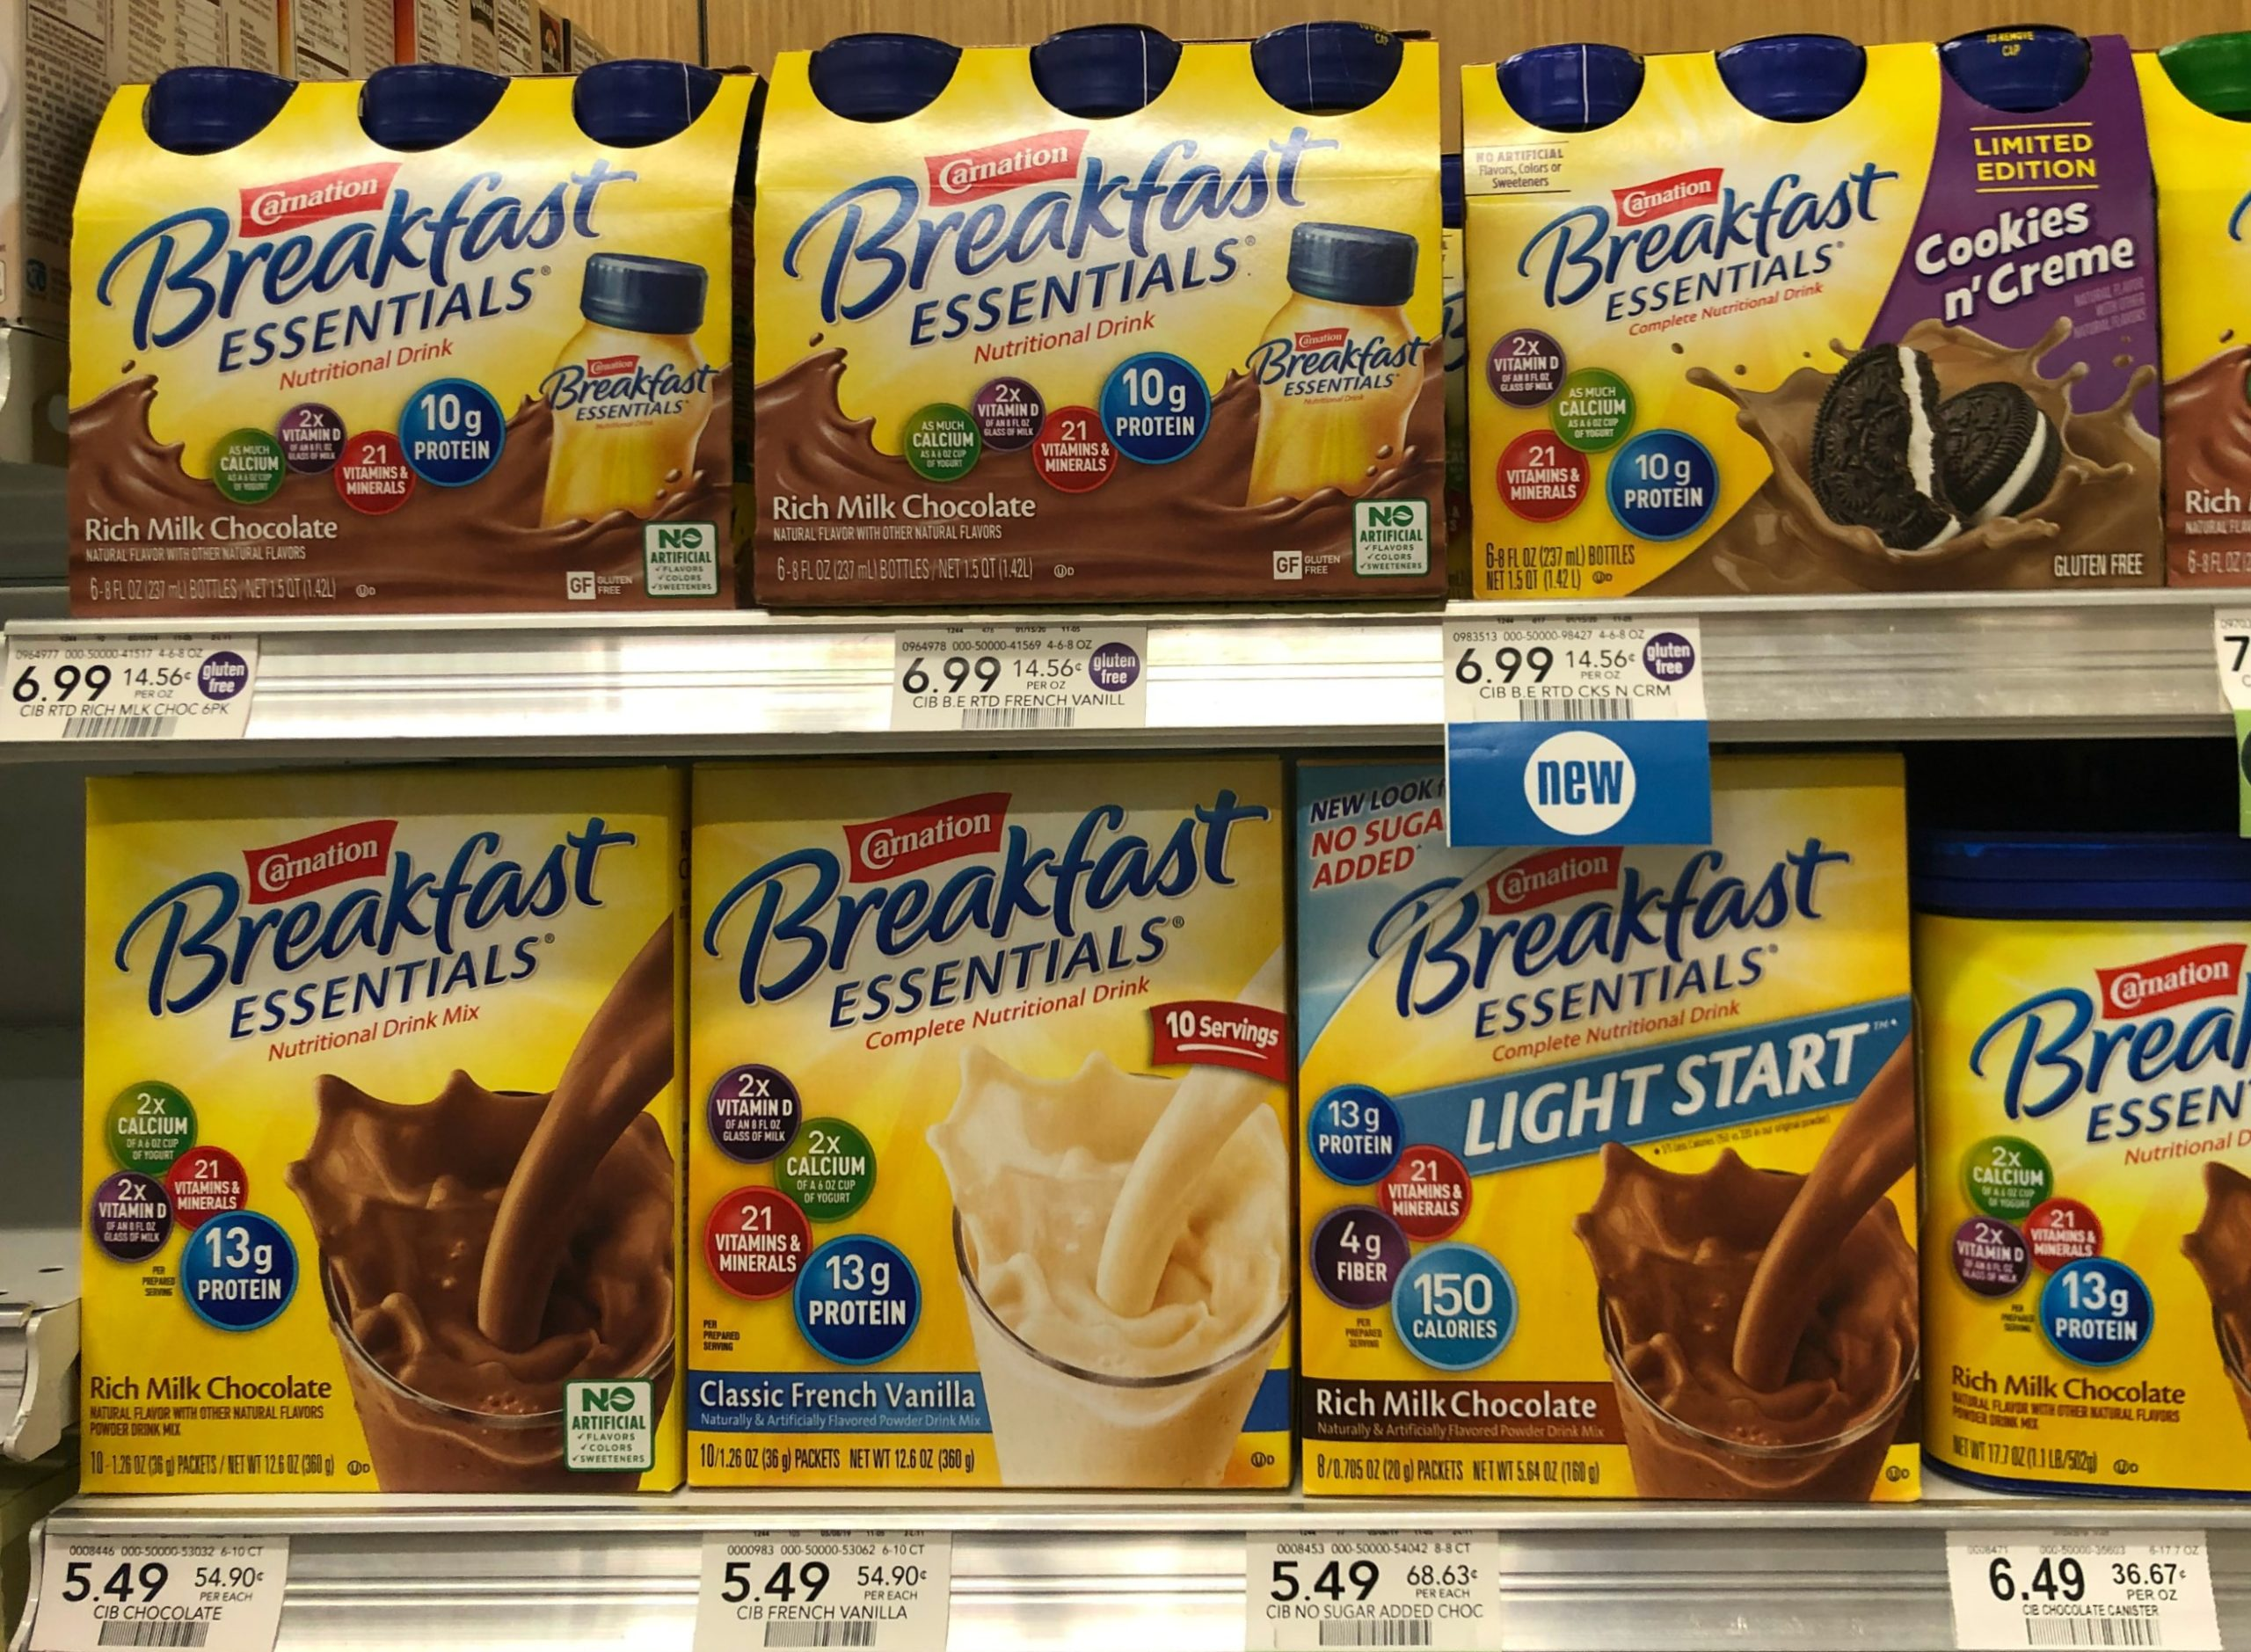 Carnation Breakfast Essentials As Low As $2.49 At Publix (25¢ Per Serving) on I Heart Publix 1